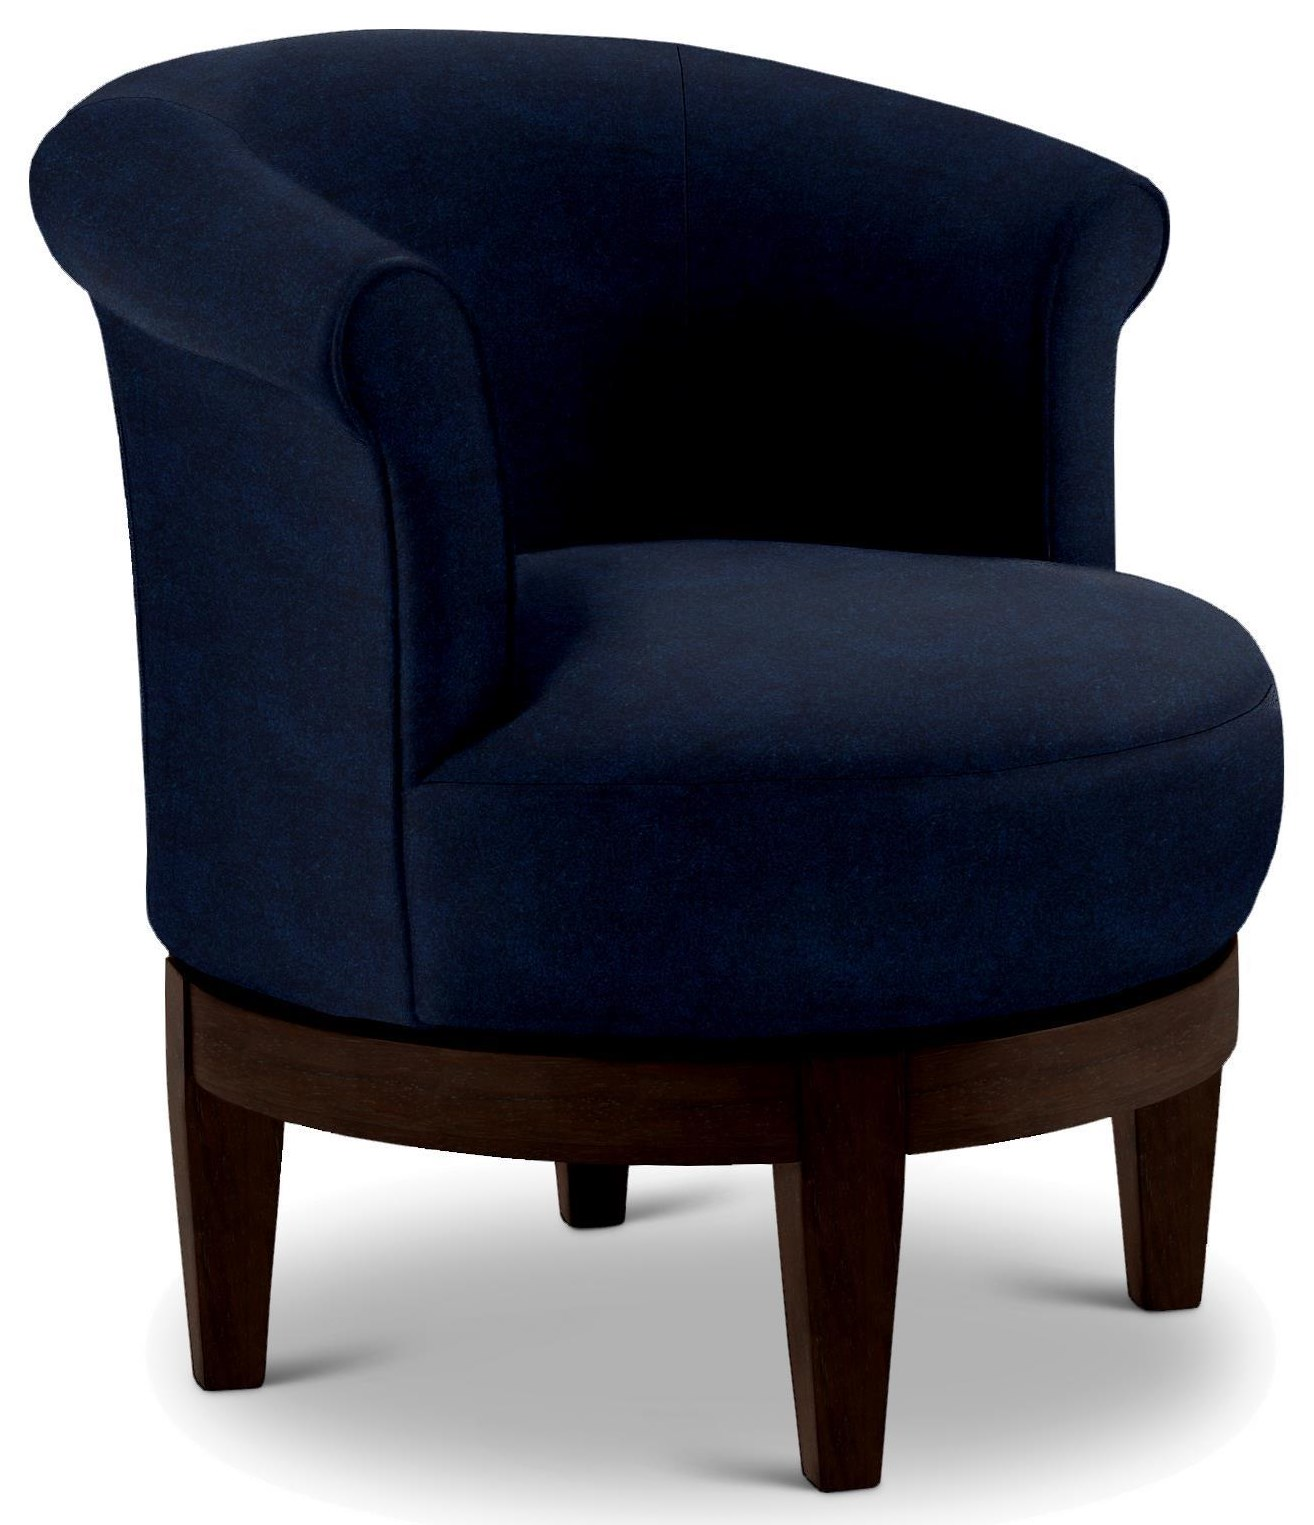 Swivel Barrel SAPPHIRE SWIVEL CHAIR by Best Home Furnishings at Walker's Furniture